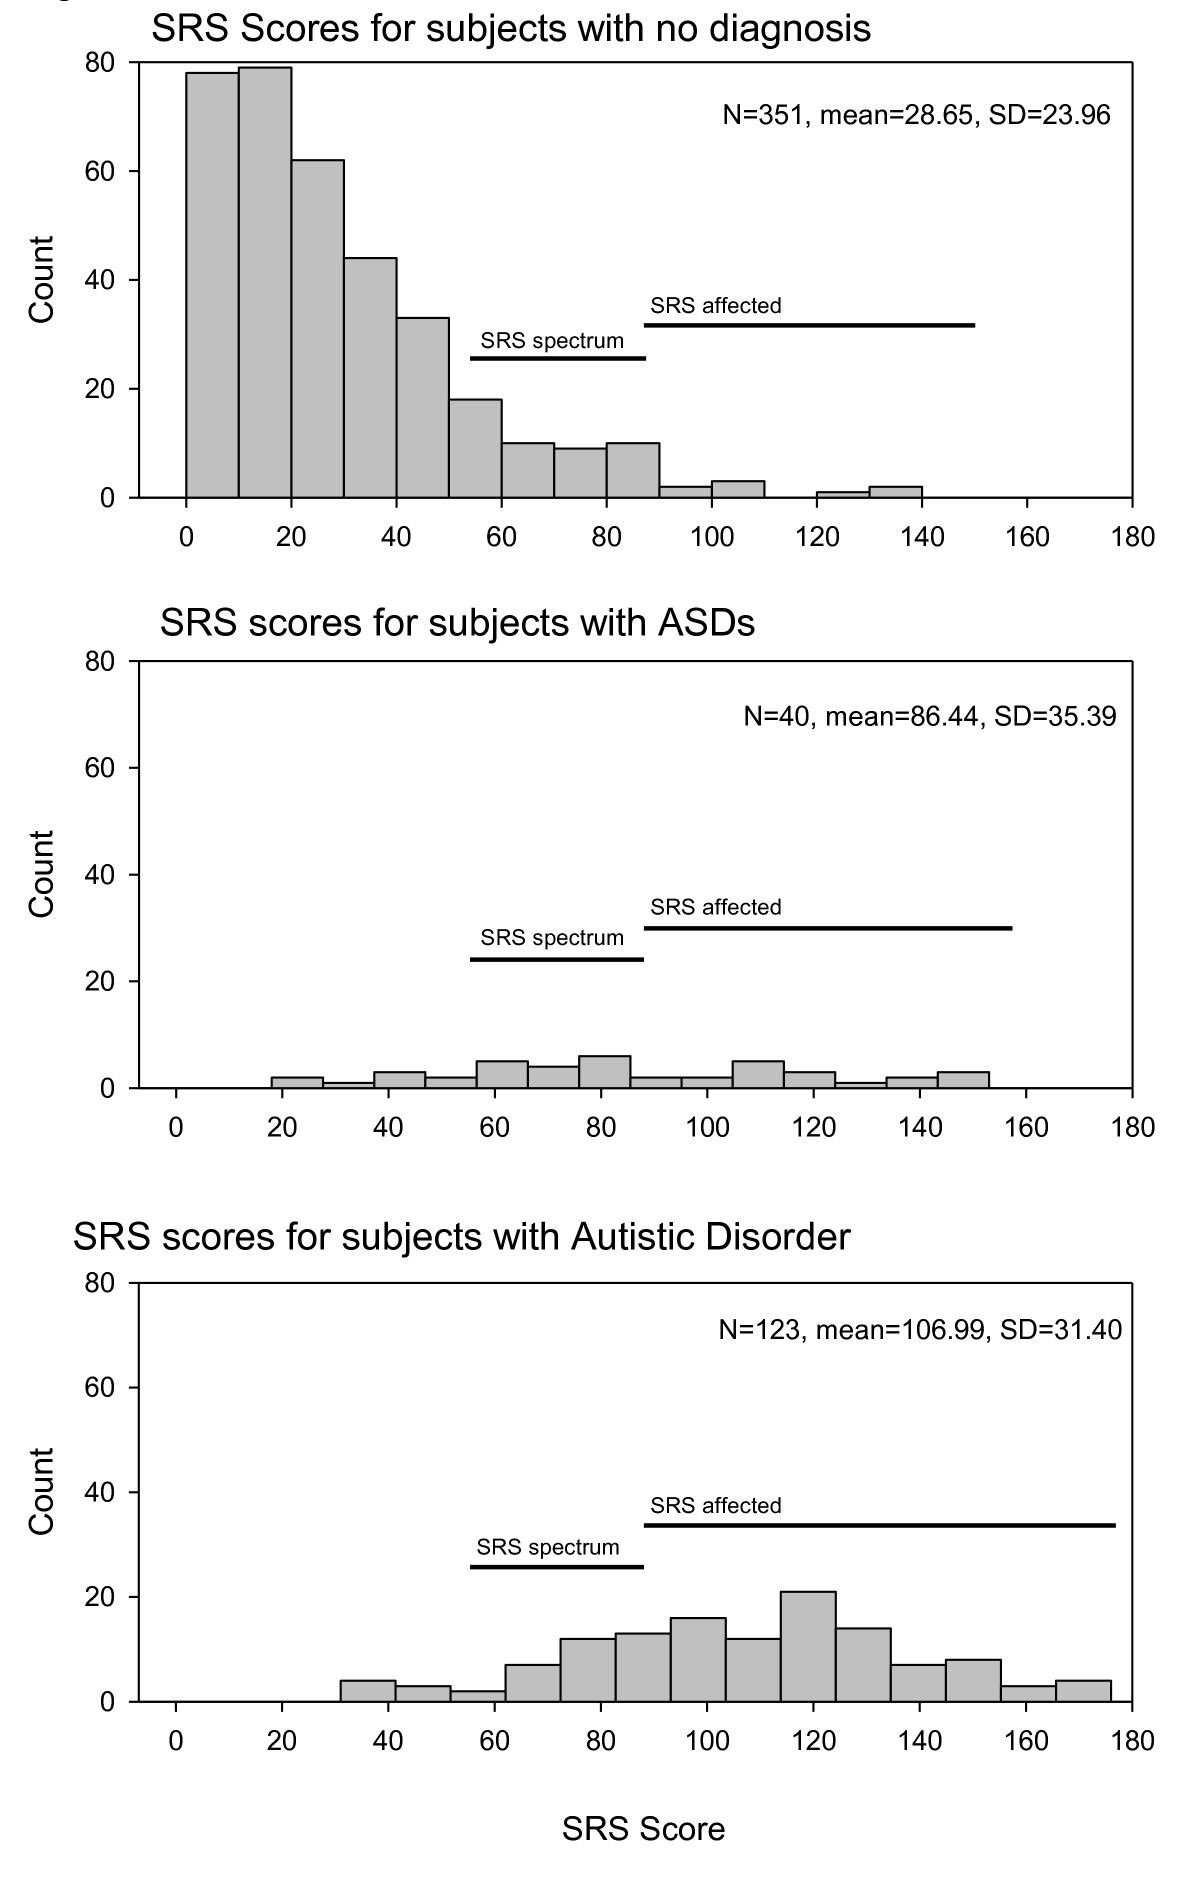 http://static-content.springer.com/image/art%3A10.1186%2F2040-2392-1-8/MediaObjects/13229_2009_Article_8_Fig1_HTML.jpg